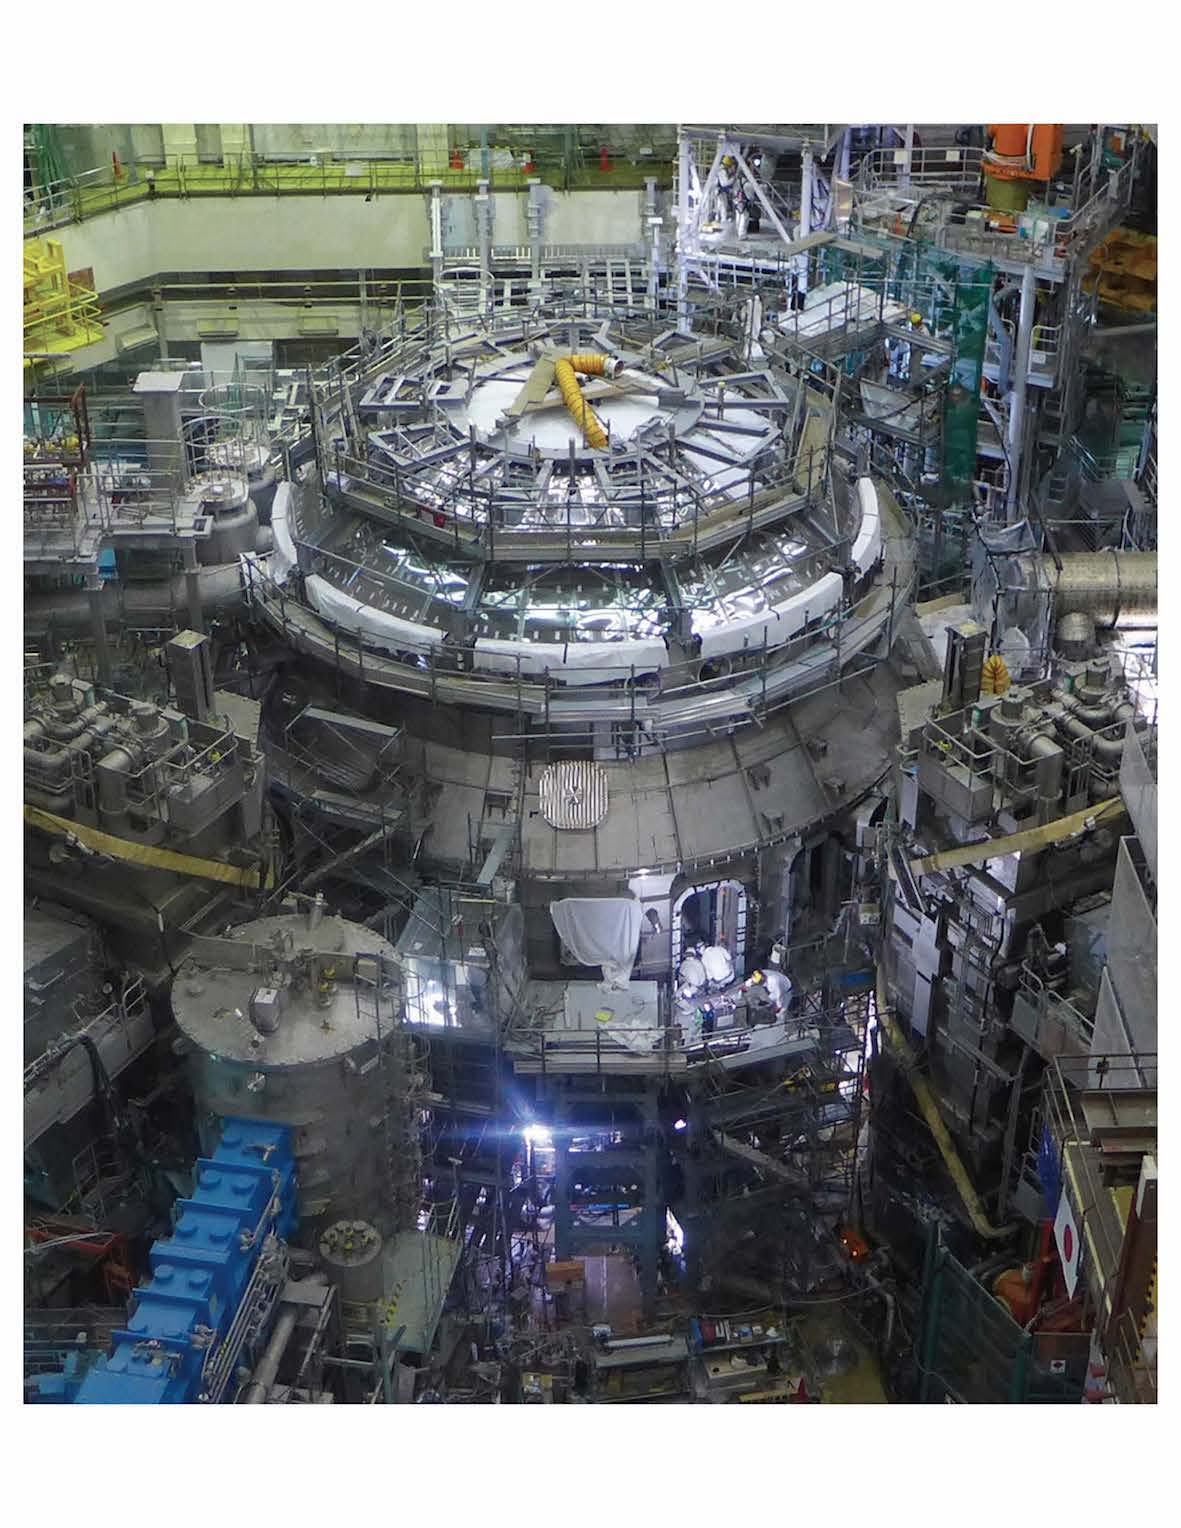 JT-60SA Tokamak covered by Cryostat Vessel Body (Mar. 2020)